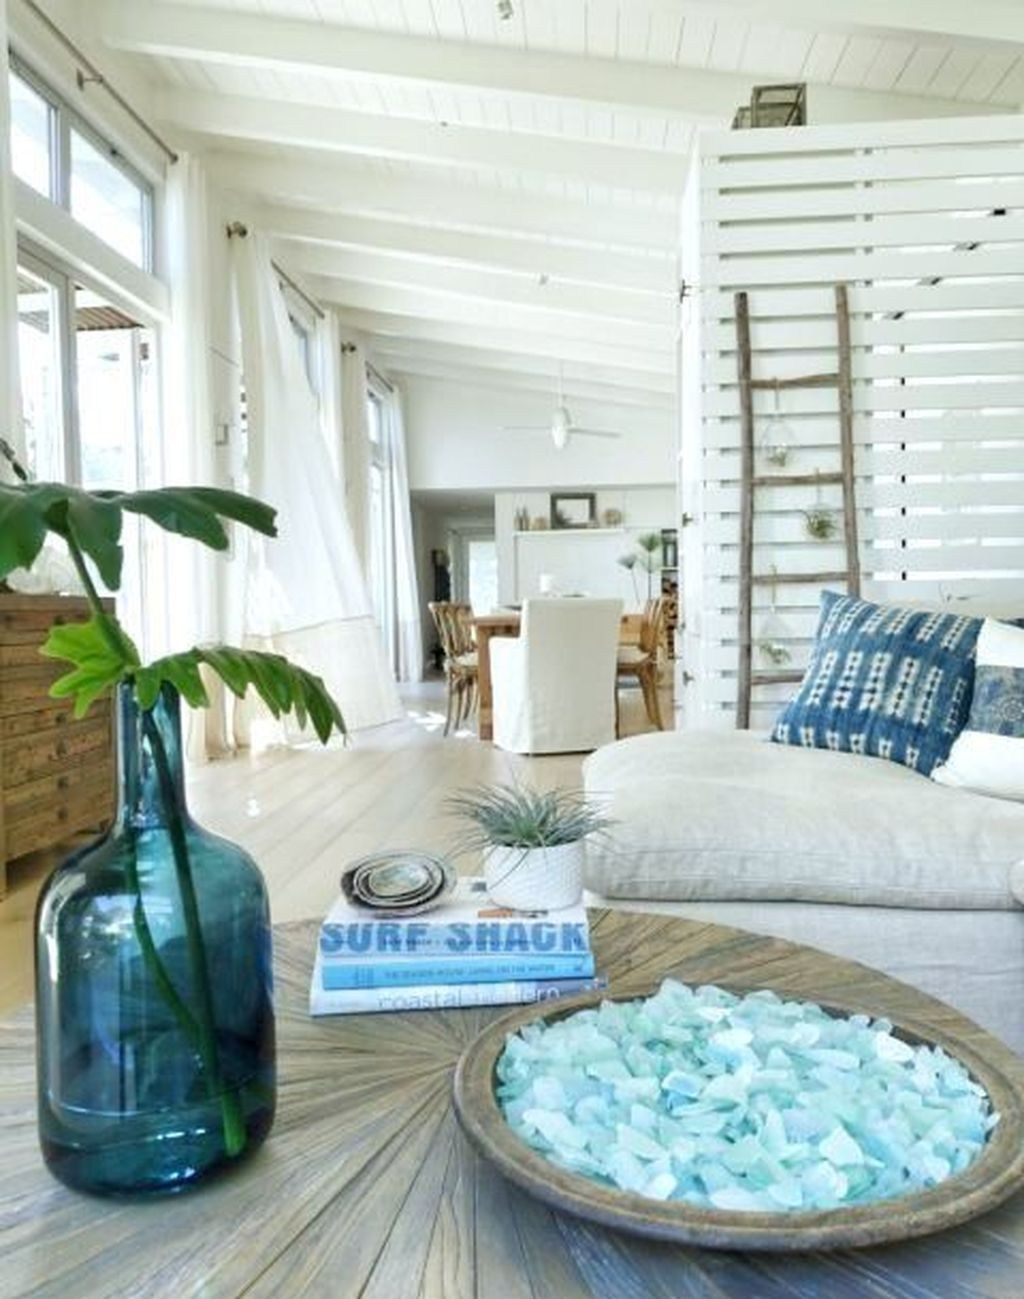 30 Awesome Beach House Design Ideas With More Pleasure In 2020 Beach House Interior Beach House Decor House Interior